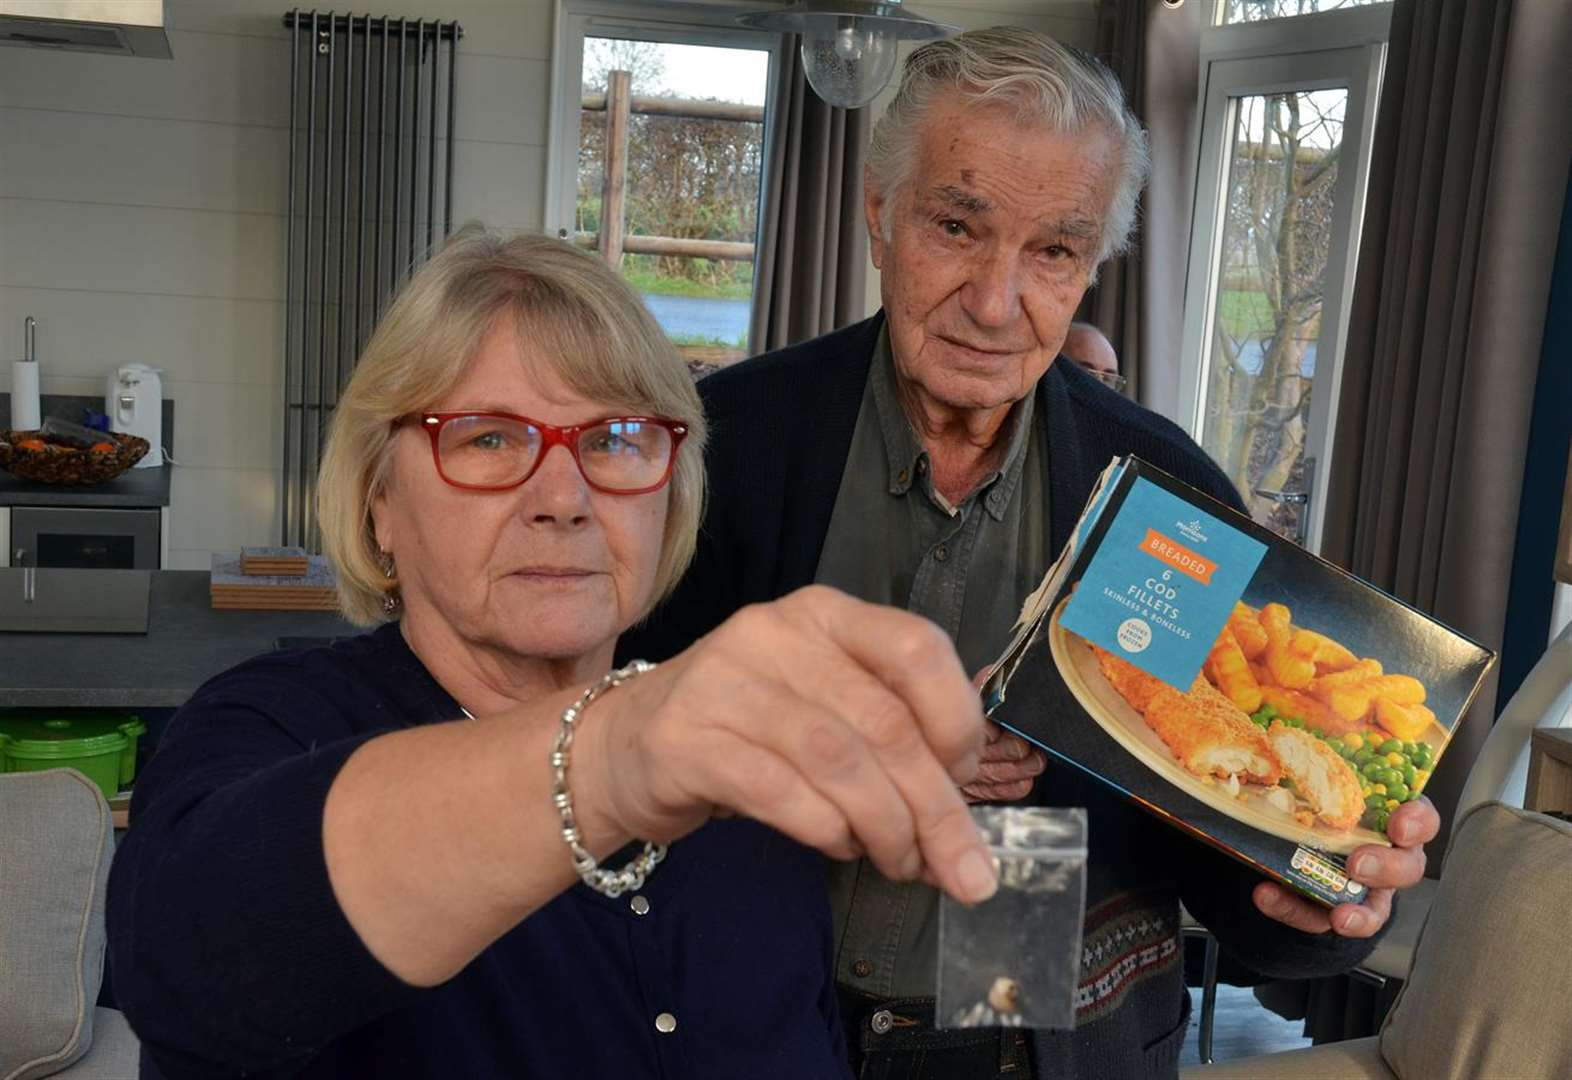 Surfleet couple find 'human tooth' in Morrisons' fish fillet